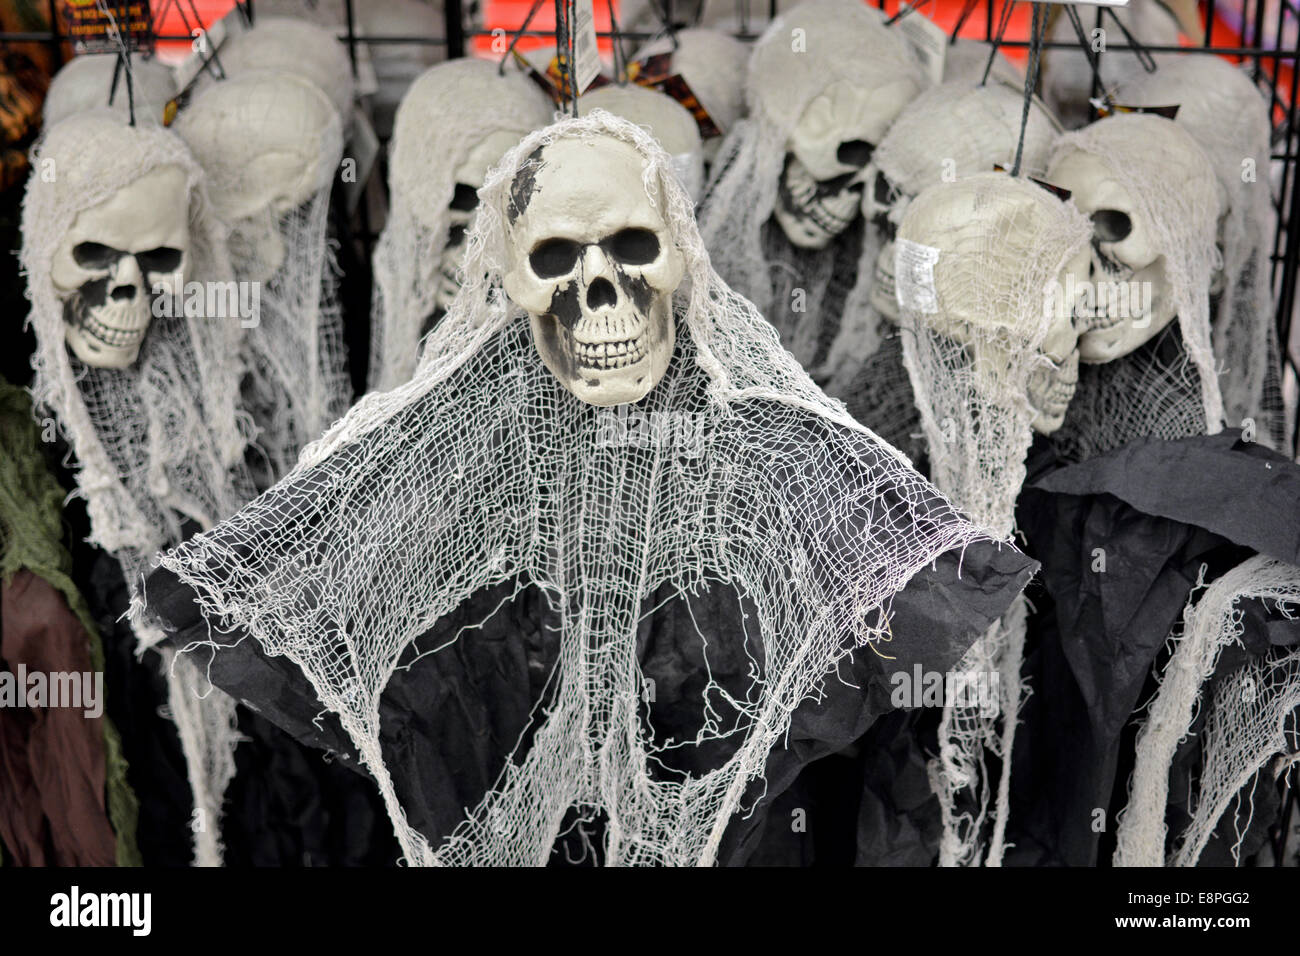 Display of Halloween decorations for sale at the Party City store ...